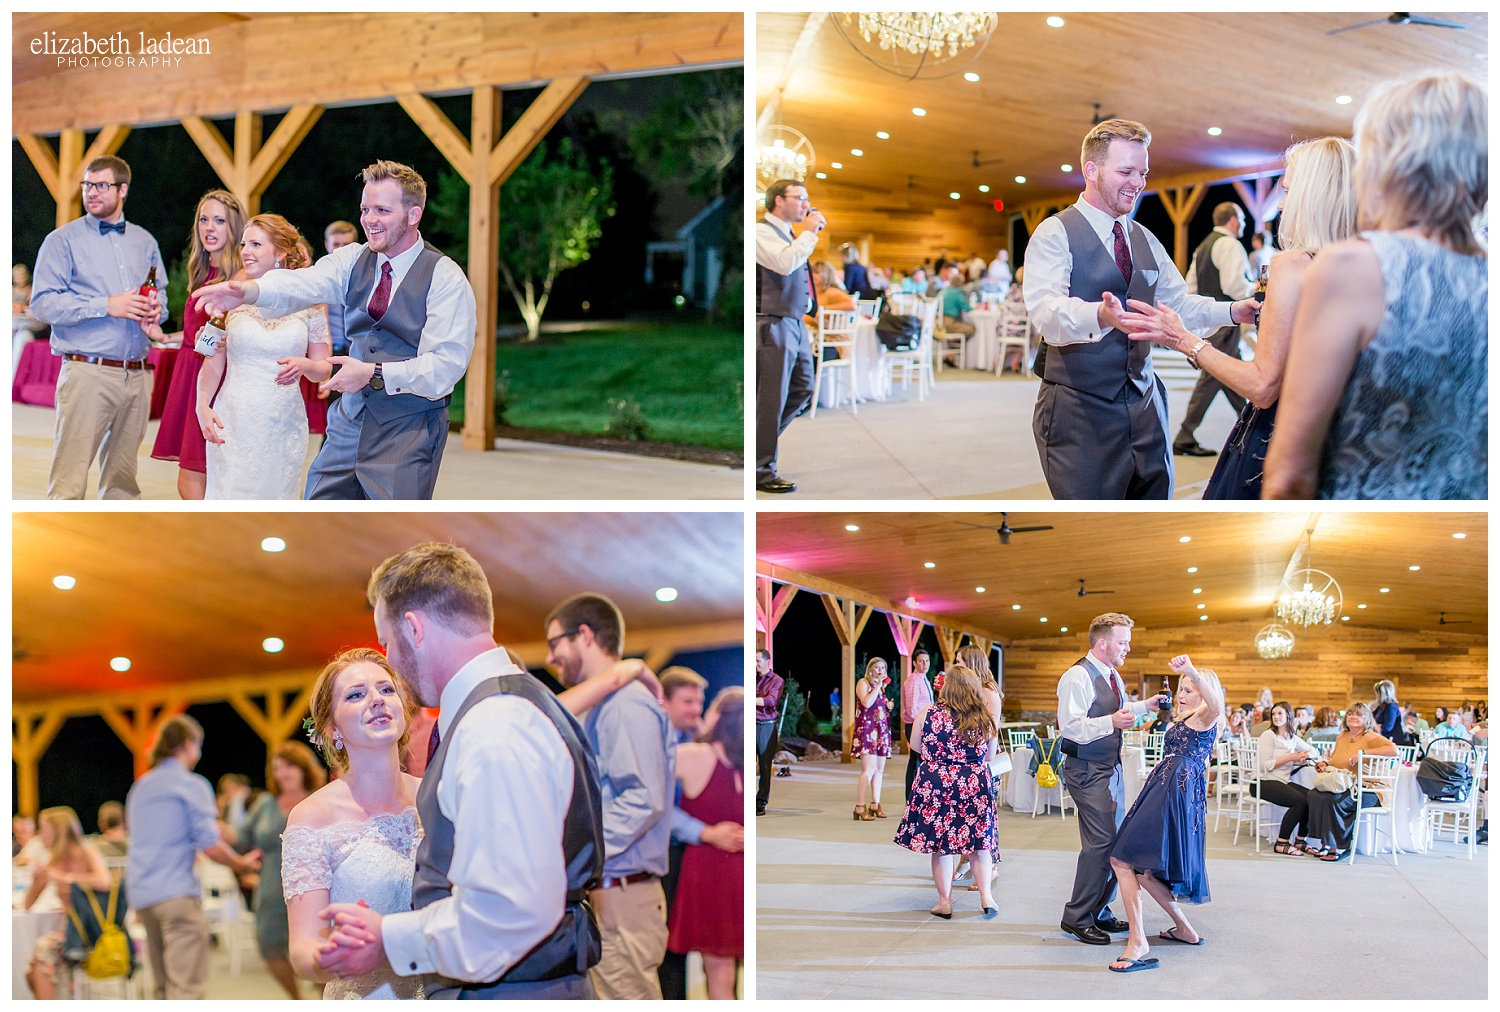 Burgundy-and-Gold-Wedding-Kansas-City-The-Legacy-at-Green-Hills-M+T0902-Elizabeth-Ladean-Photography-photo-_2343.jpg